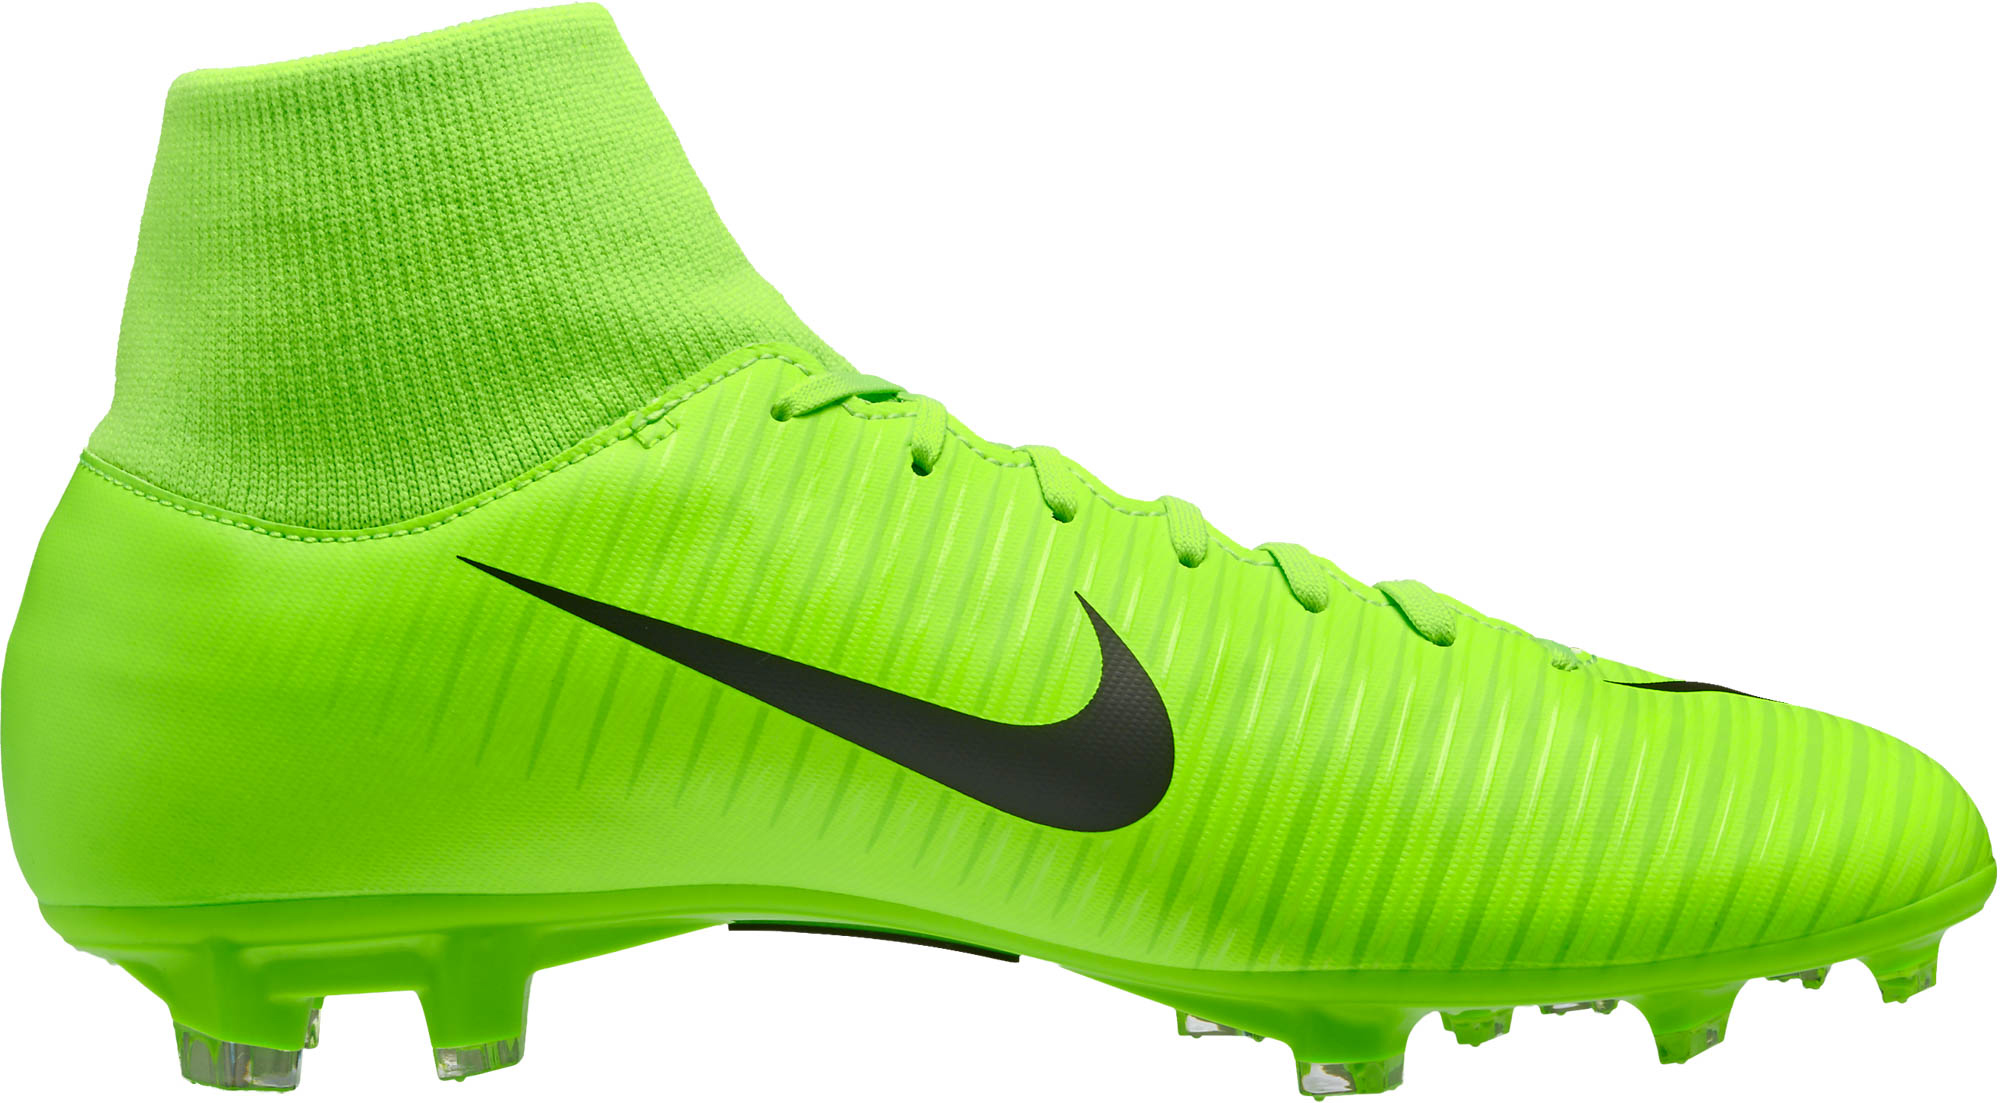 new style 937b9 311a2 Nike Mercurial Victory VI DF FG Soccer Cleats - Electric ...